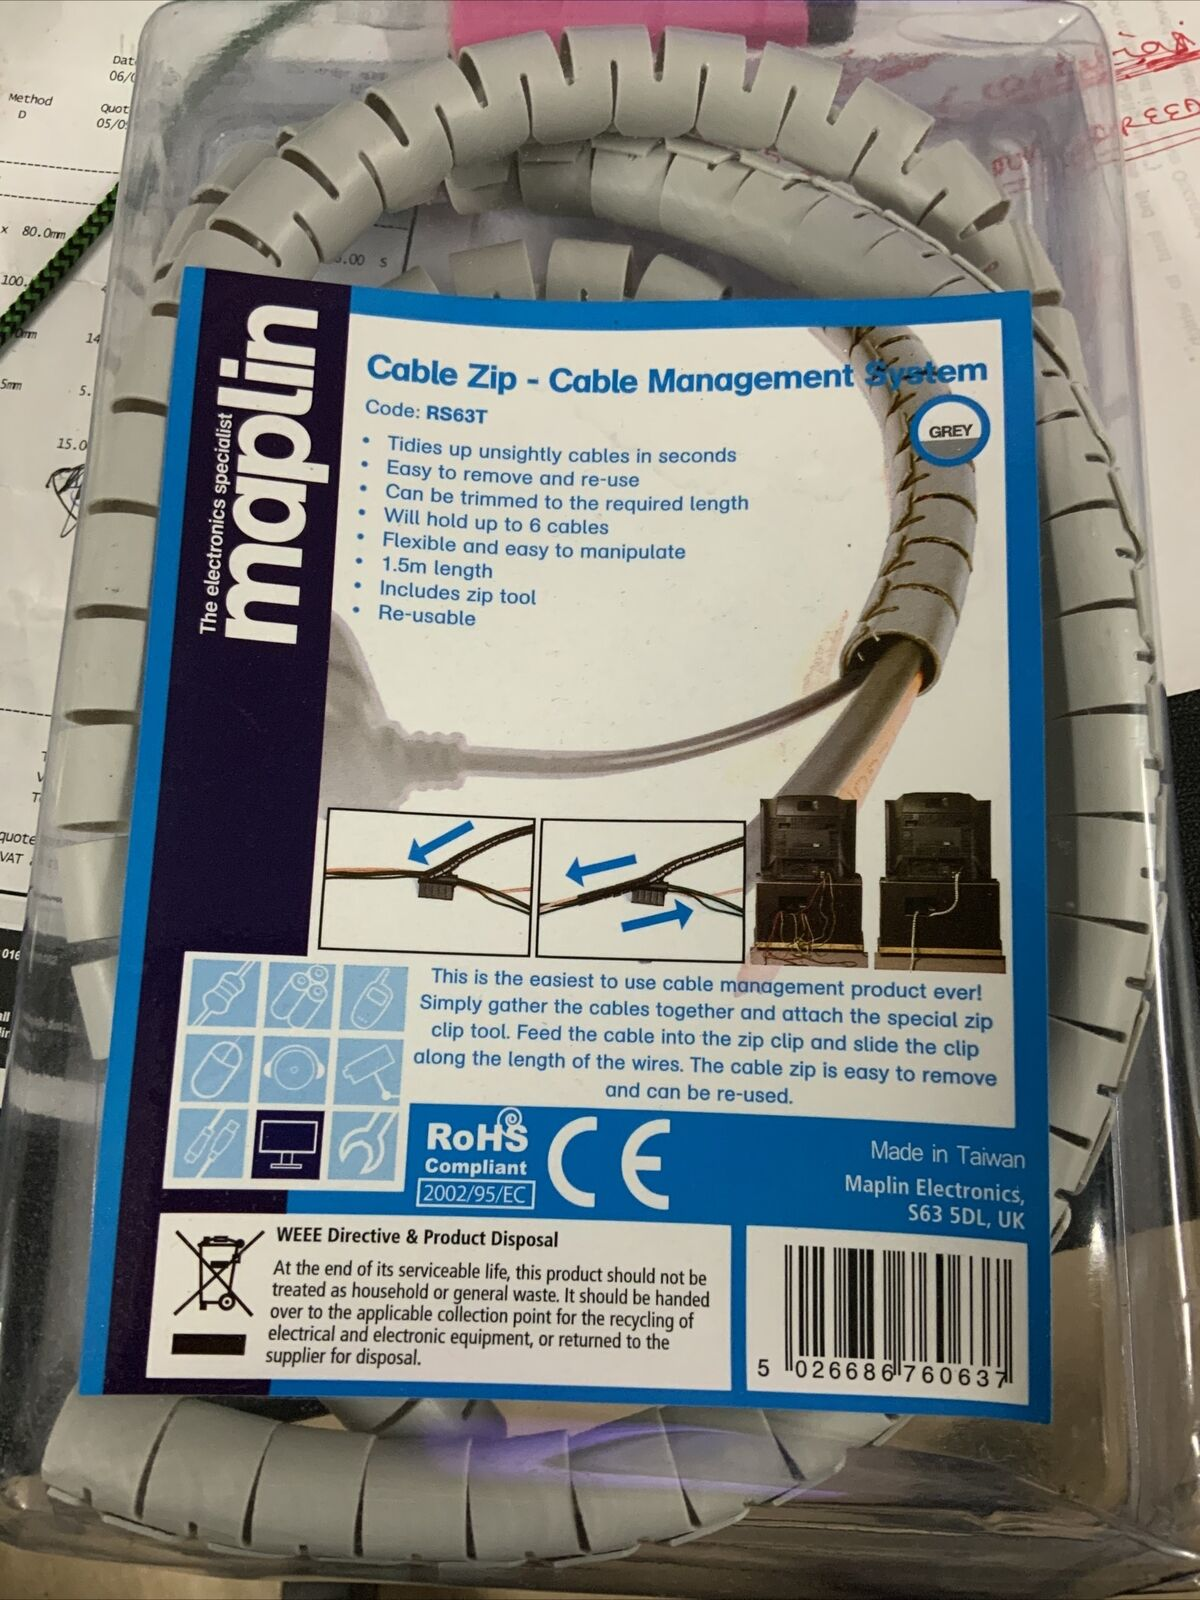 Maplin Grey Cable Zip Cable Management System